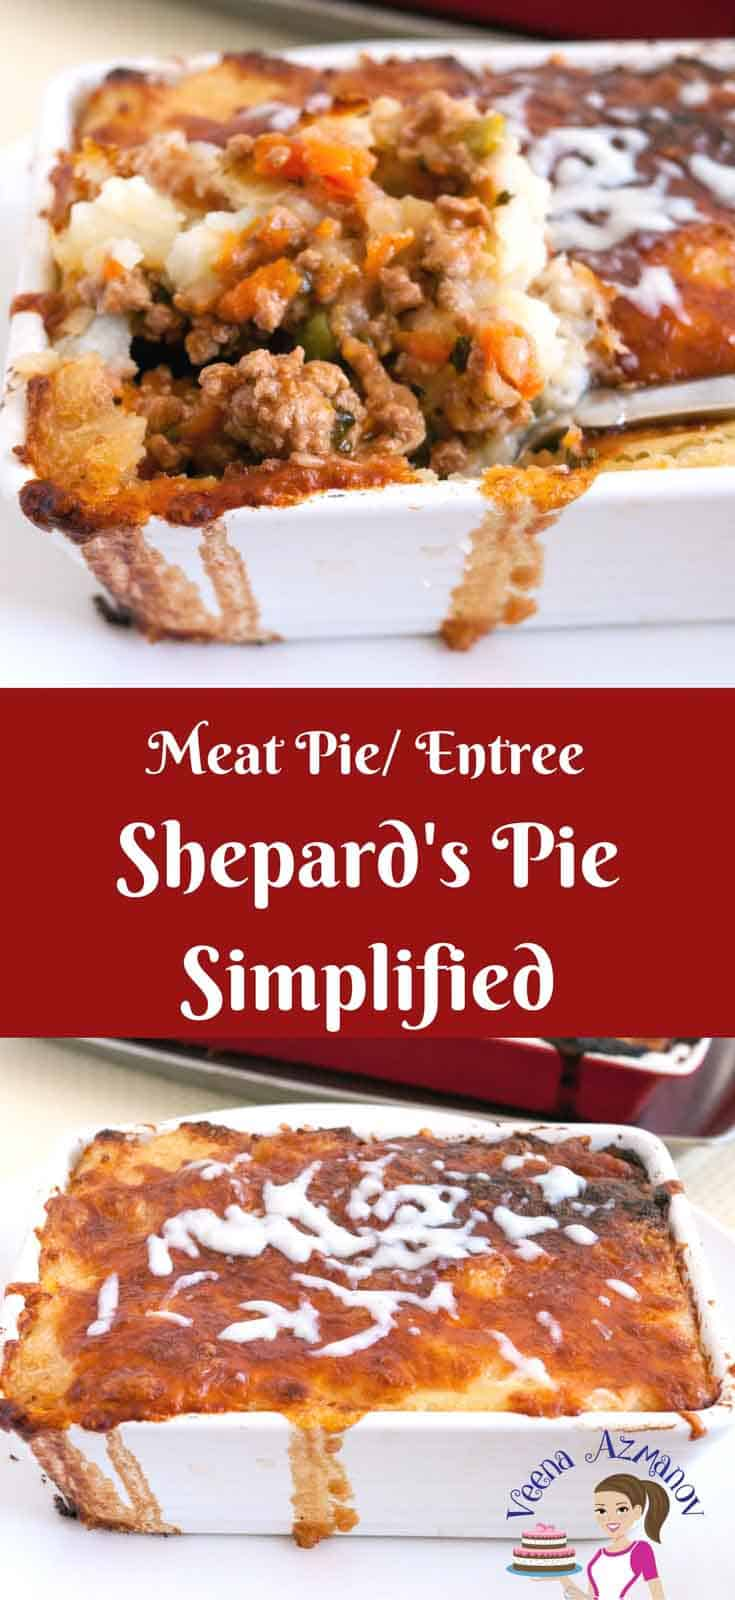 Nothing beats a delicious juicy meat and mashed potato casserole. That's what this Shepard's Pie is a quick and easy dinner that you will enjoy making over and over again. Flavored with cinnamon and Worcestershire sauce and cooked with traditional carrots peas and topped with that melting cheese makes everything more desirable.